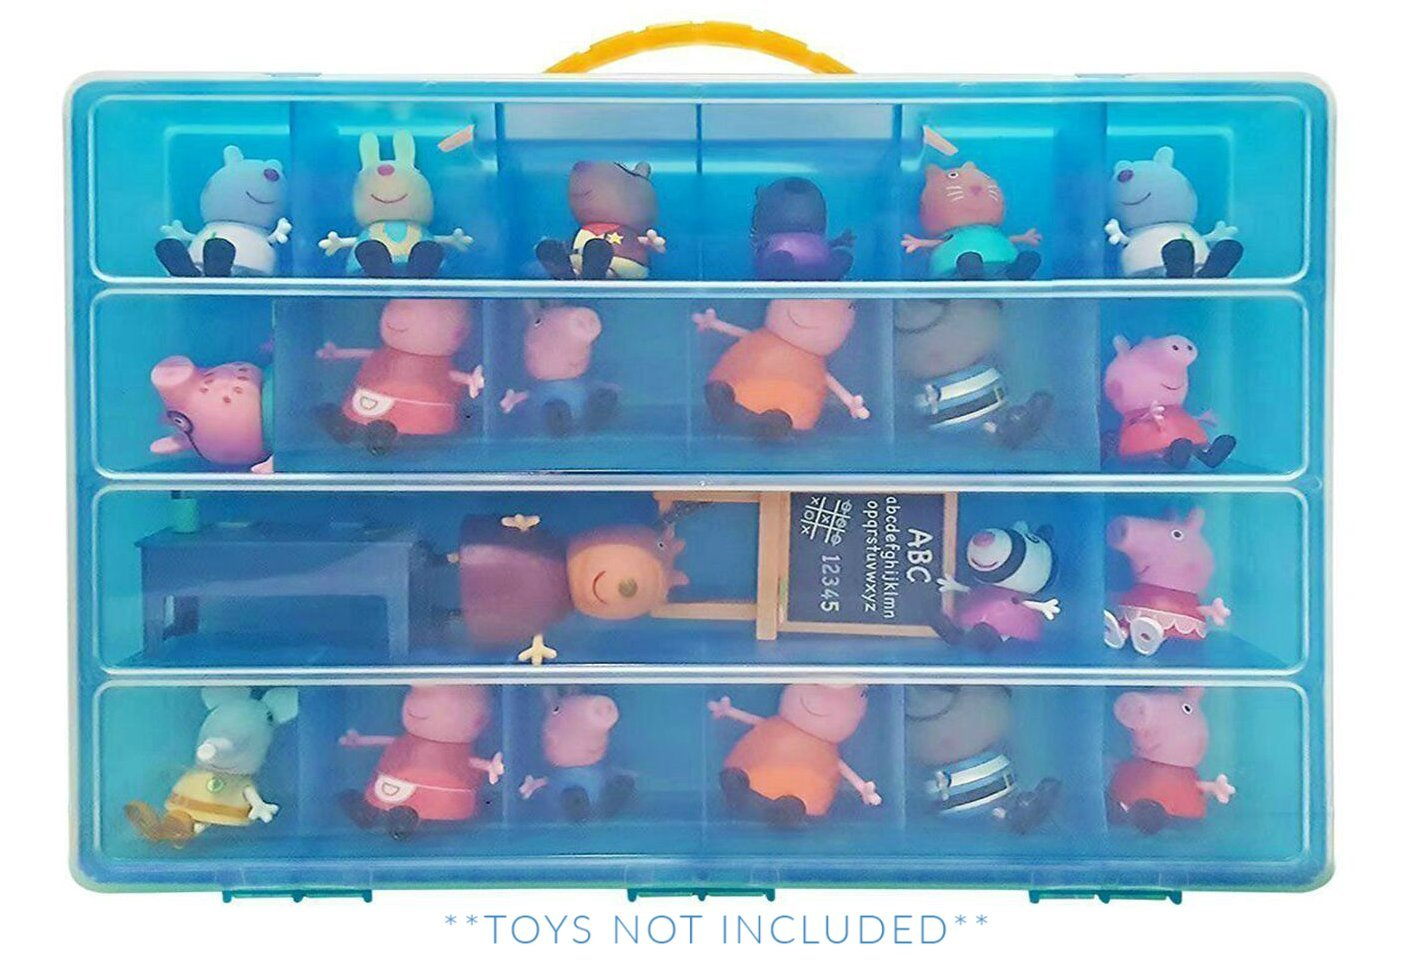 Life Made Better Toy Organizer with Carrying Handle, Fits Up to 40 Figures and Compatible with Peppa Pig Mini Figures, Blue